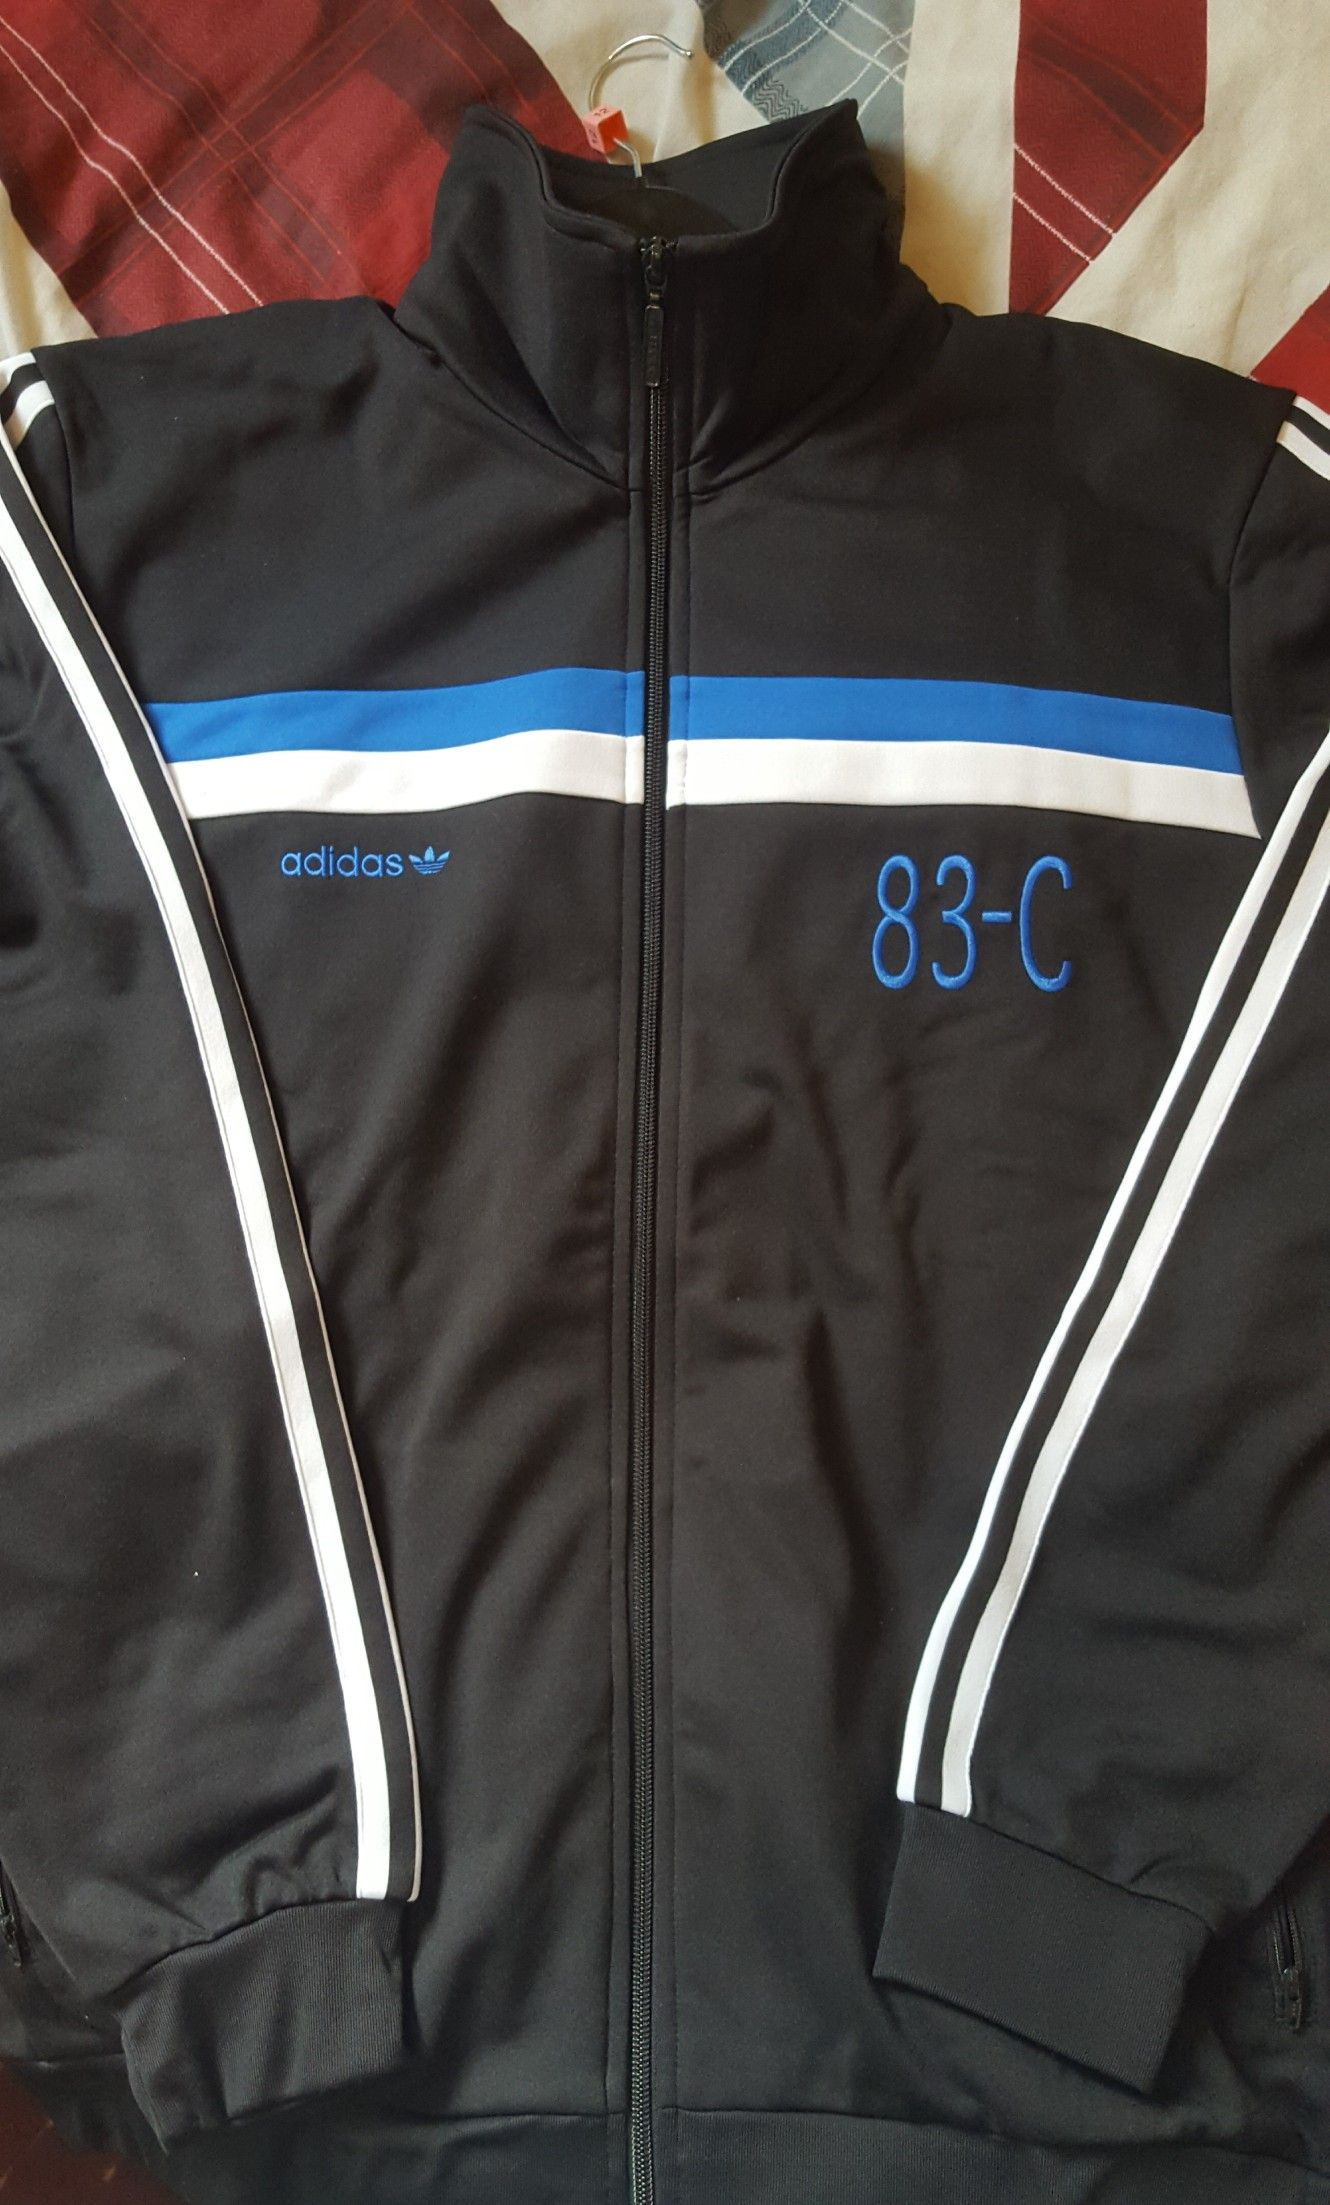 Adidas 83 C Track Top Asos Affare 24 In Vendita Asos Top Adidas Figo 1a81c1